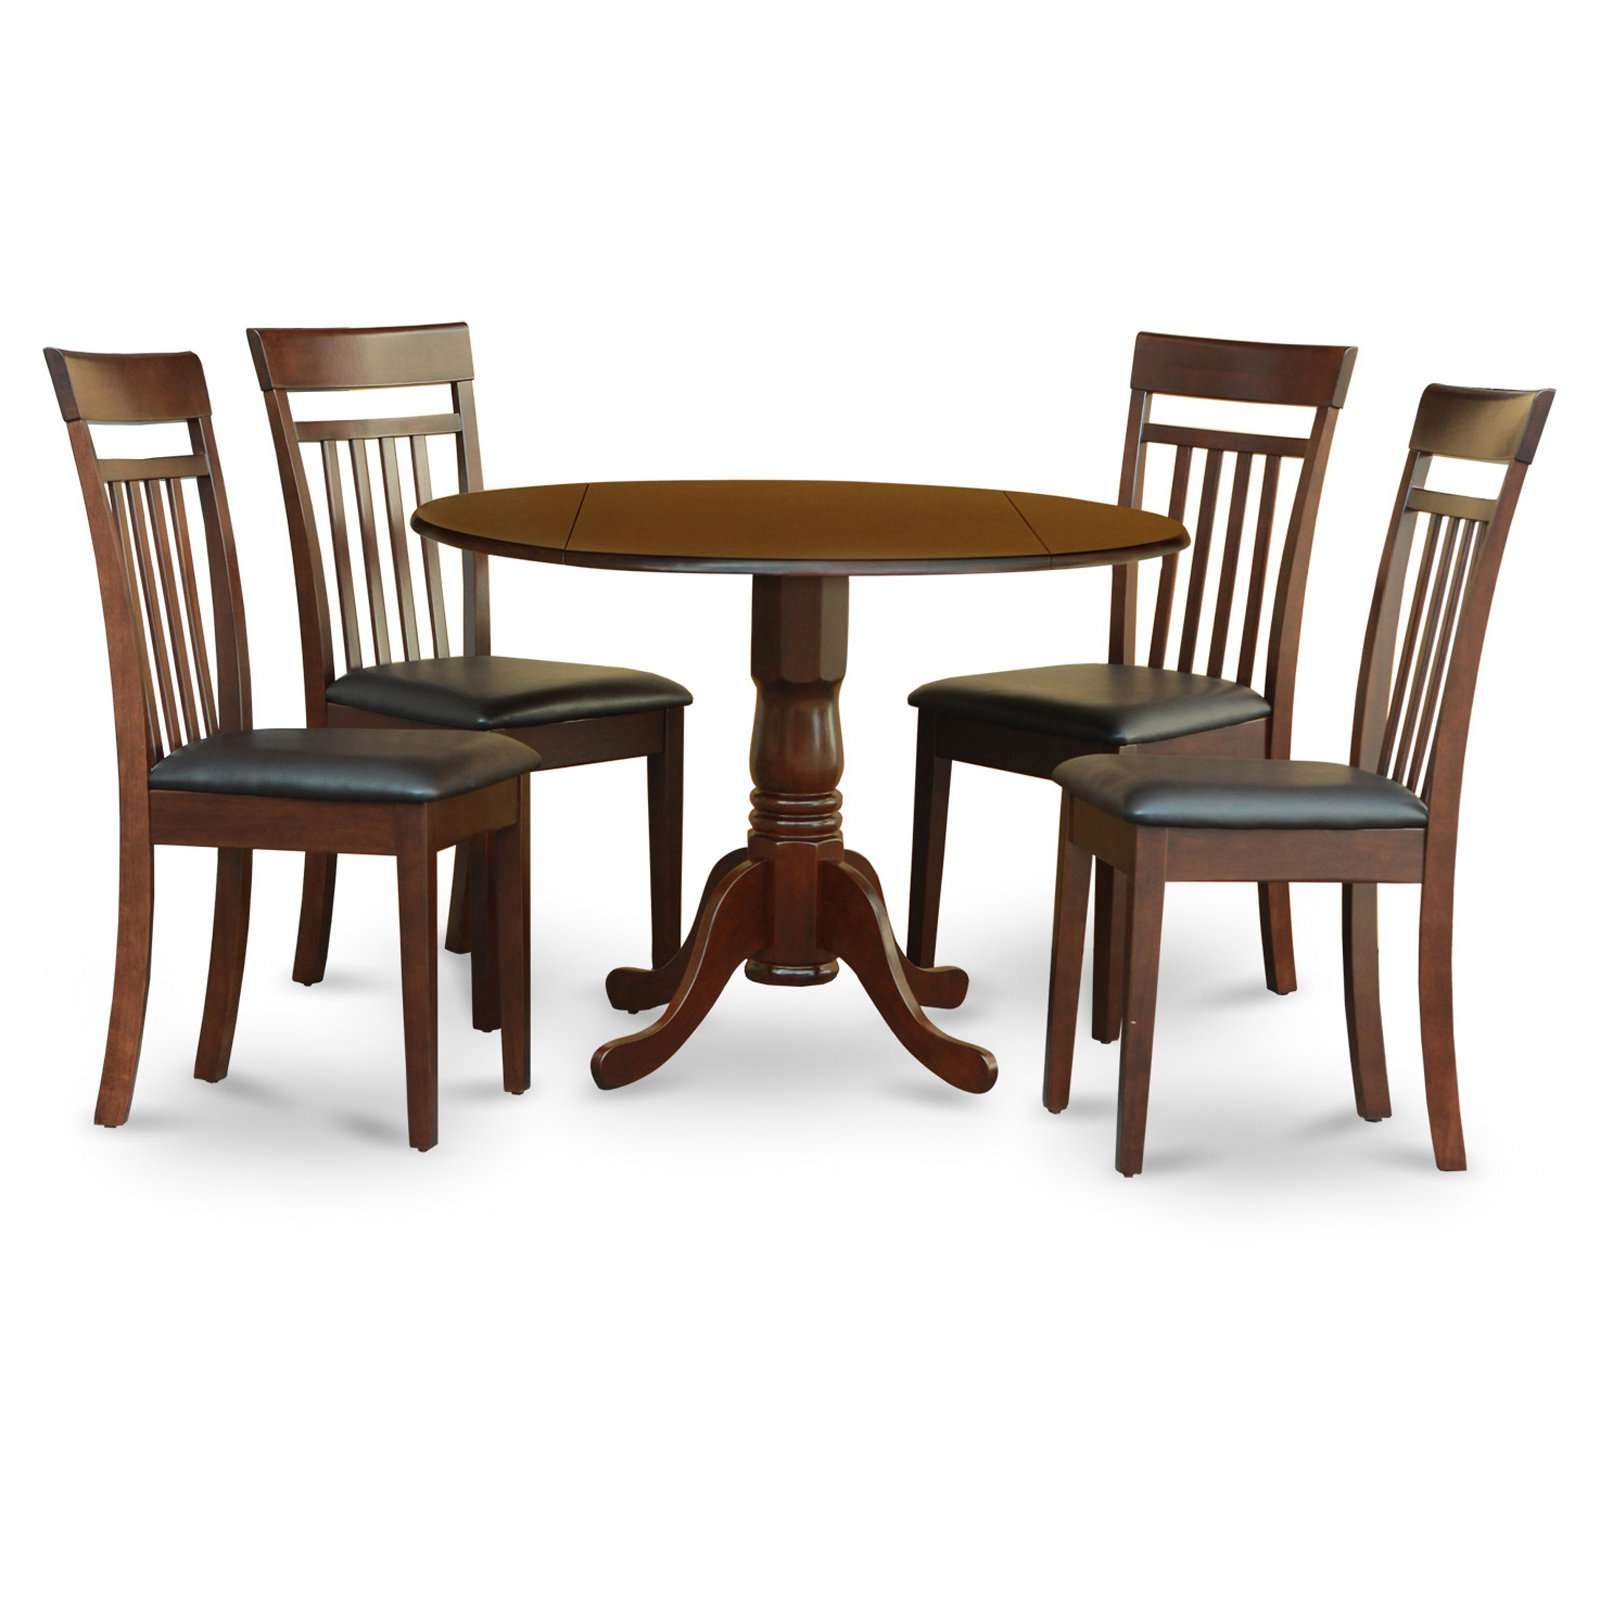 Silver Dining Table And Chairs, East West Furniture Dublin 5 Piece Drop Leaf Dining Table Set With Capri Faux Leather Seat Chairs Walmart Com Walmart Com